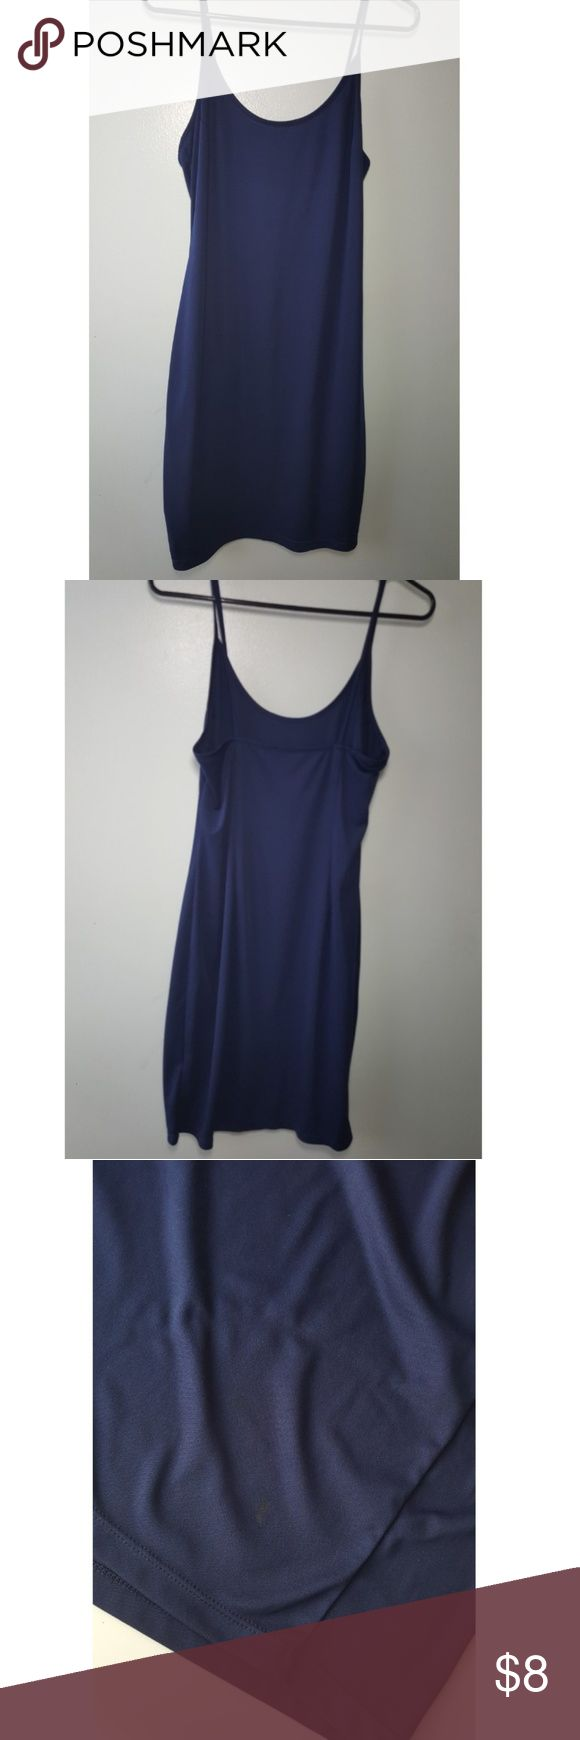 Navy Cami Slip Dress Femine and simple. Size: Medium (fit 6-8) Cuts of above knees Non-adjustable straps Perfect for wear under sheer dresses or by itself  Note: small burn at the lower back side (Accidentally sat on curler wand, price lowered) Dresses Mini